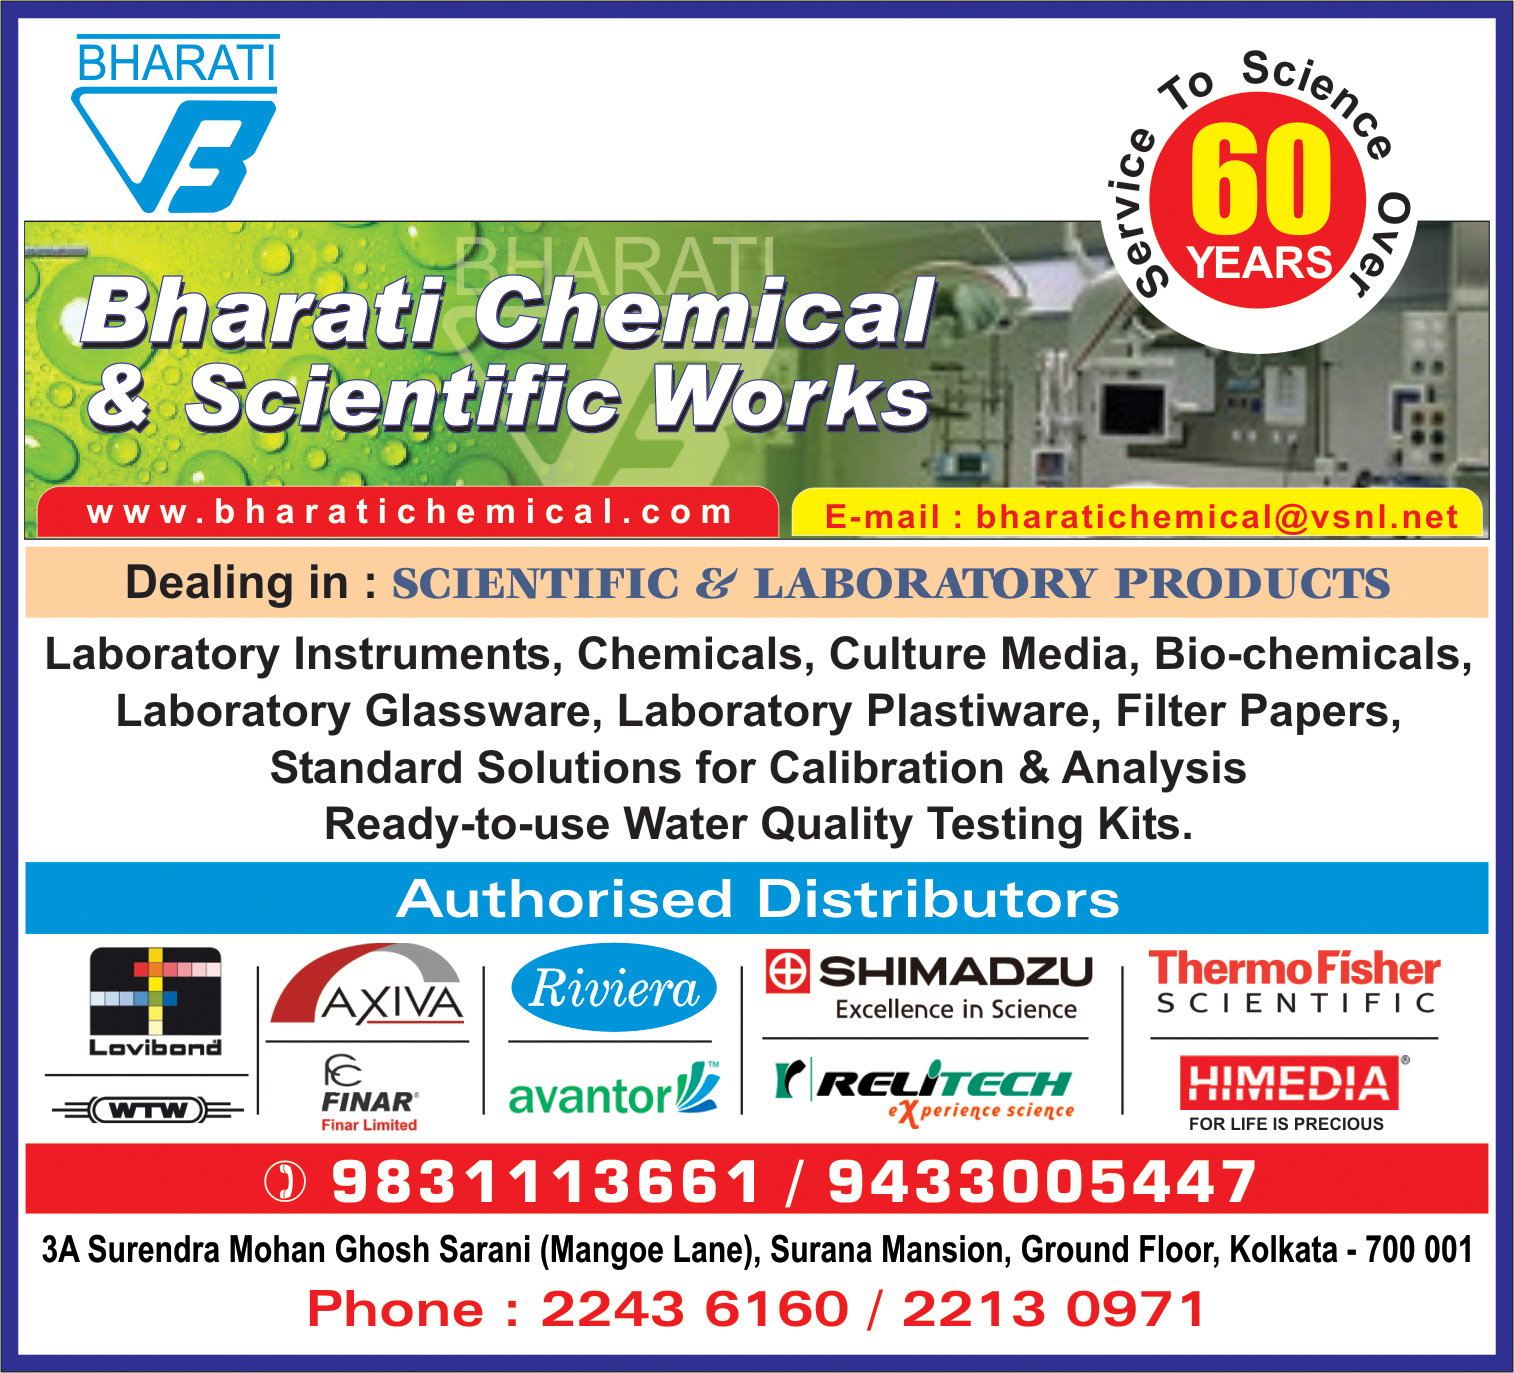 Laboratory Equipment and Chemicals, BHARATI CHEMICAL & SCIENTIFIC WORKS, Kolkata,  Yellow Pages, Kolkata, West Bengal